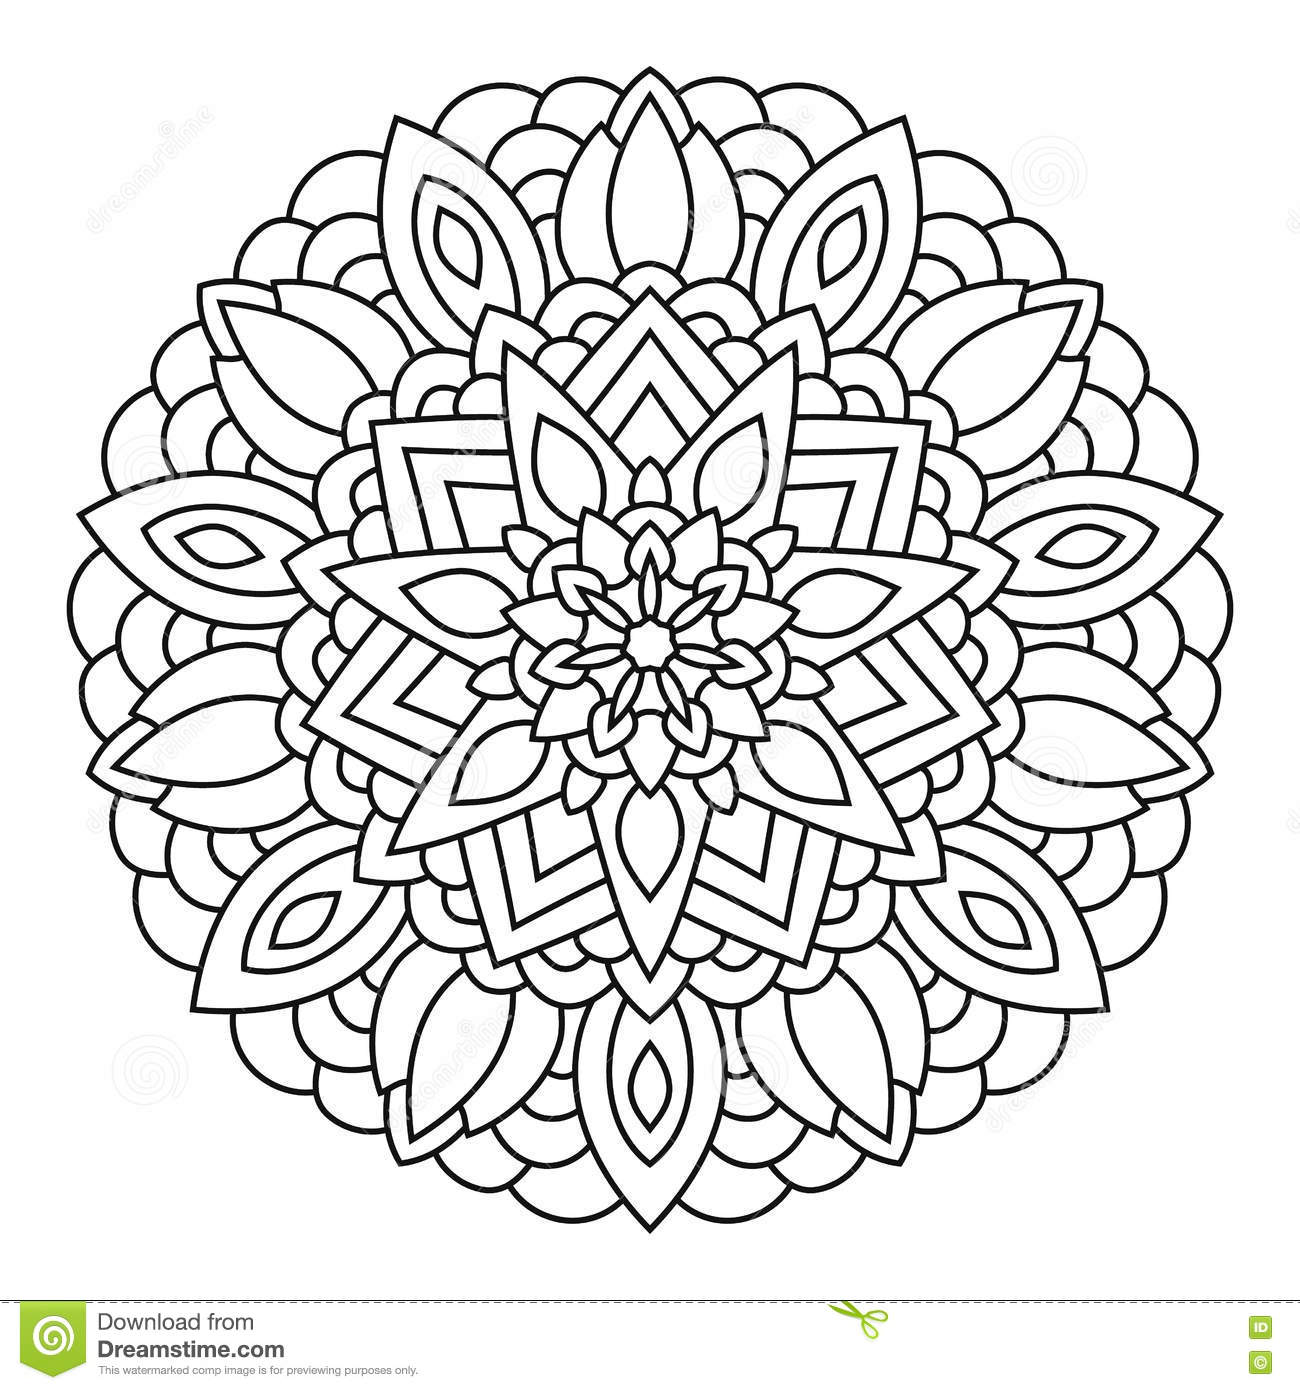 Galerry nature mandala coloring pages